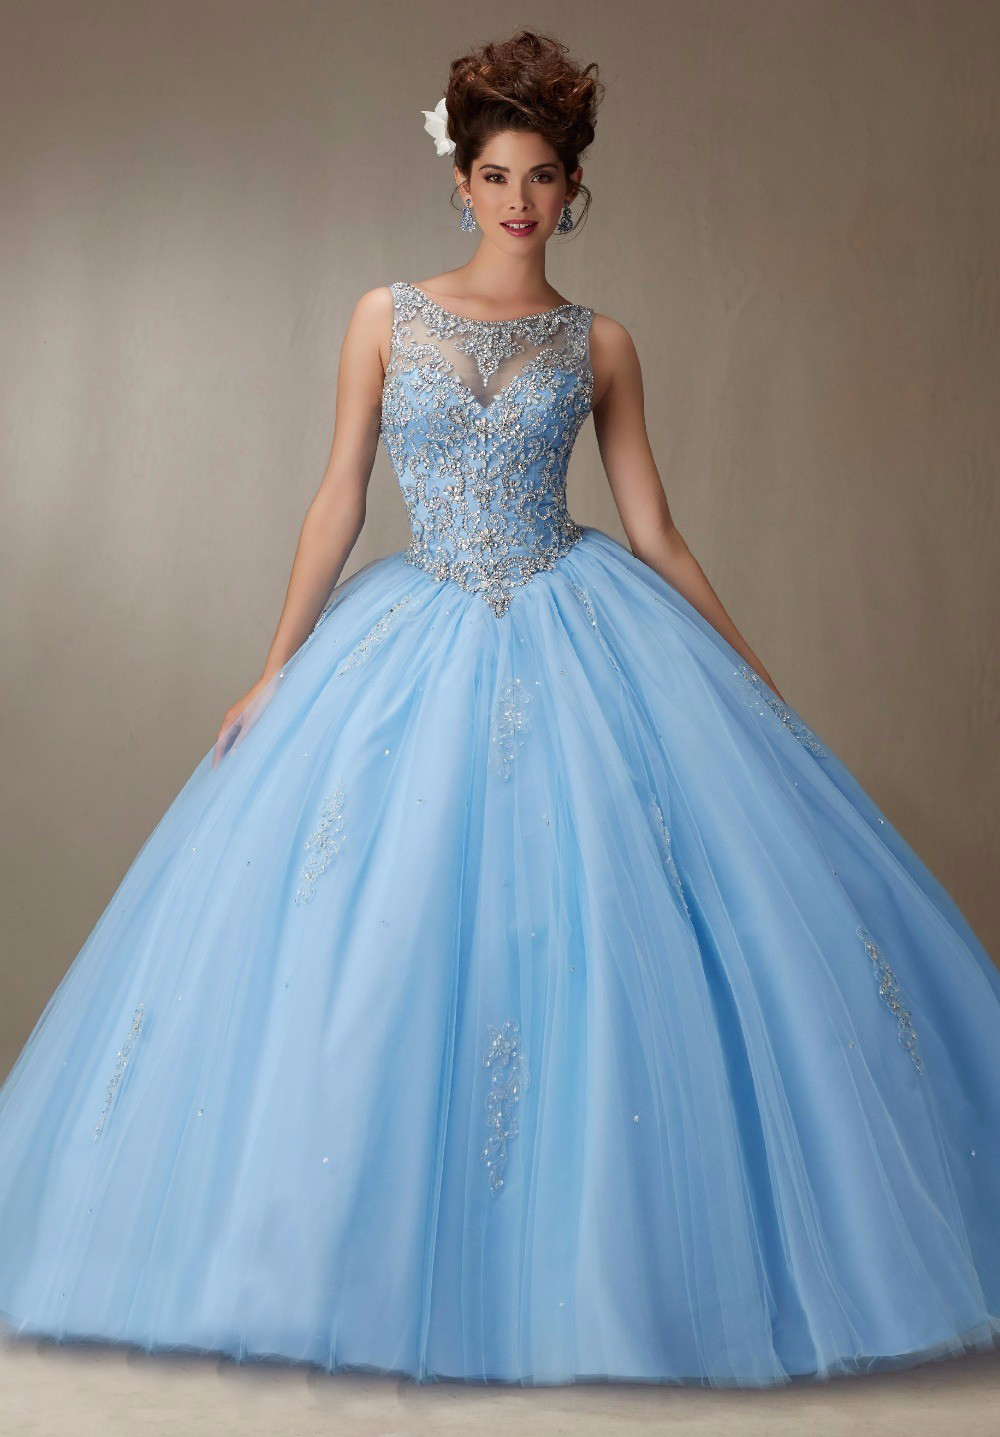 Compare Prices on Light Blue Wedding Gown- Online Shopping/Buy Low ...